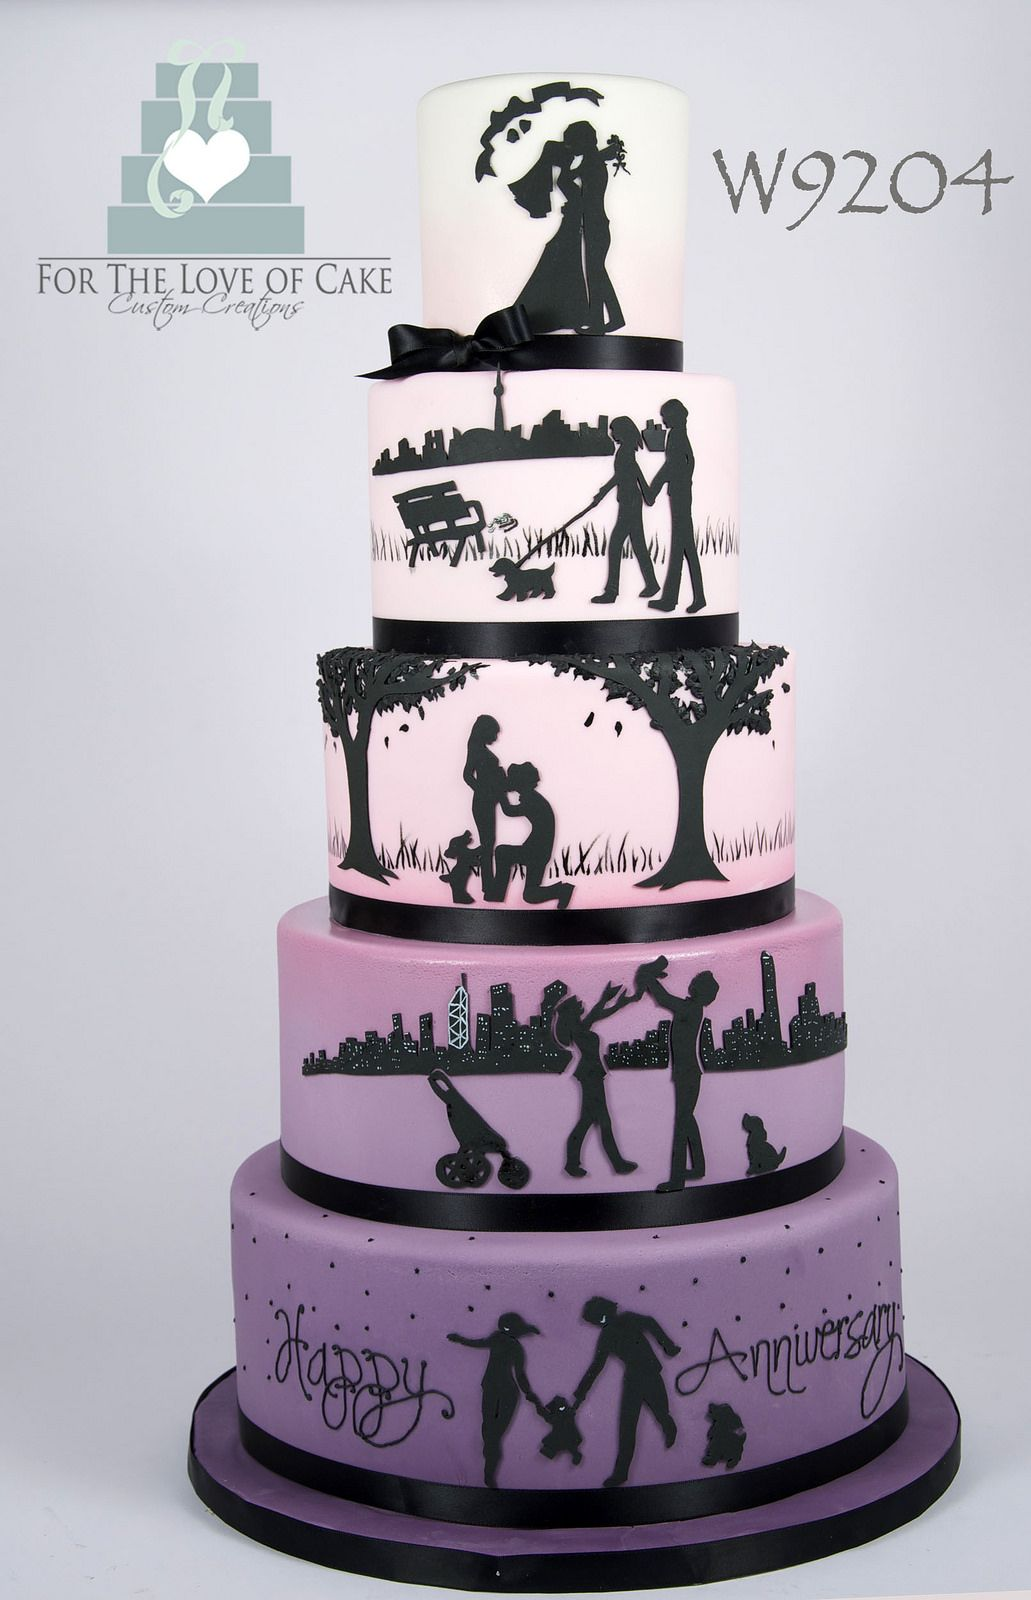 W9204 Ombre Gradiant Love Story Anniversary Silhouette Wedding Cake